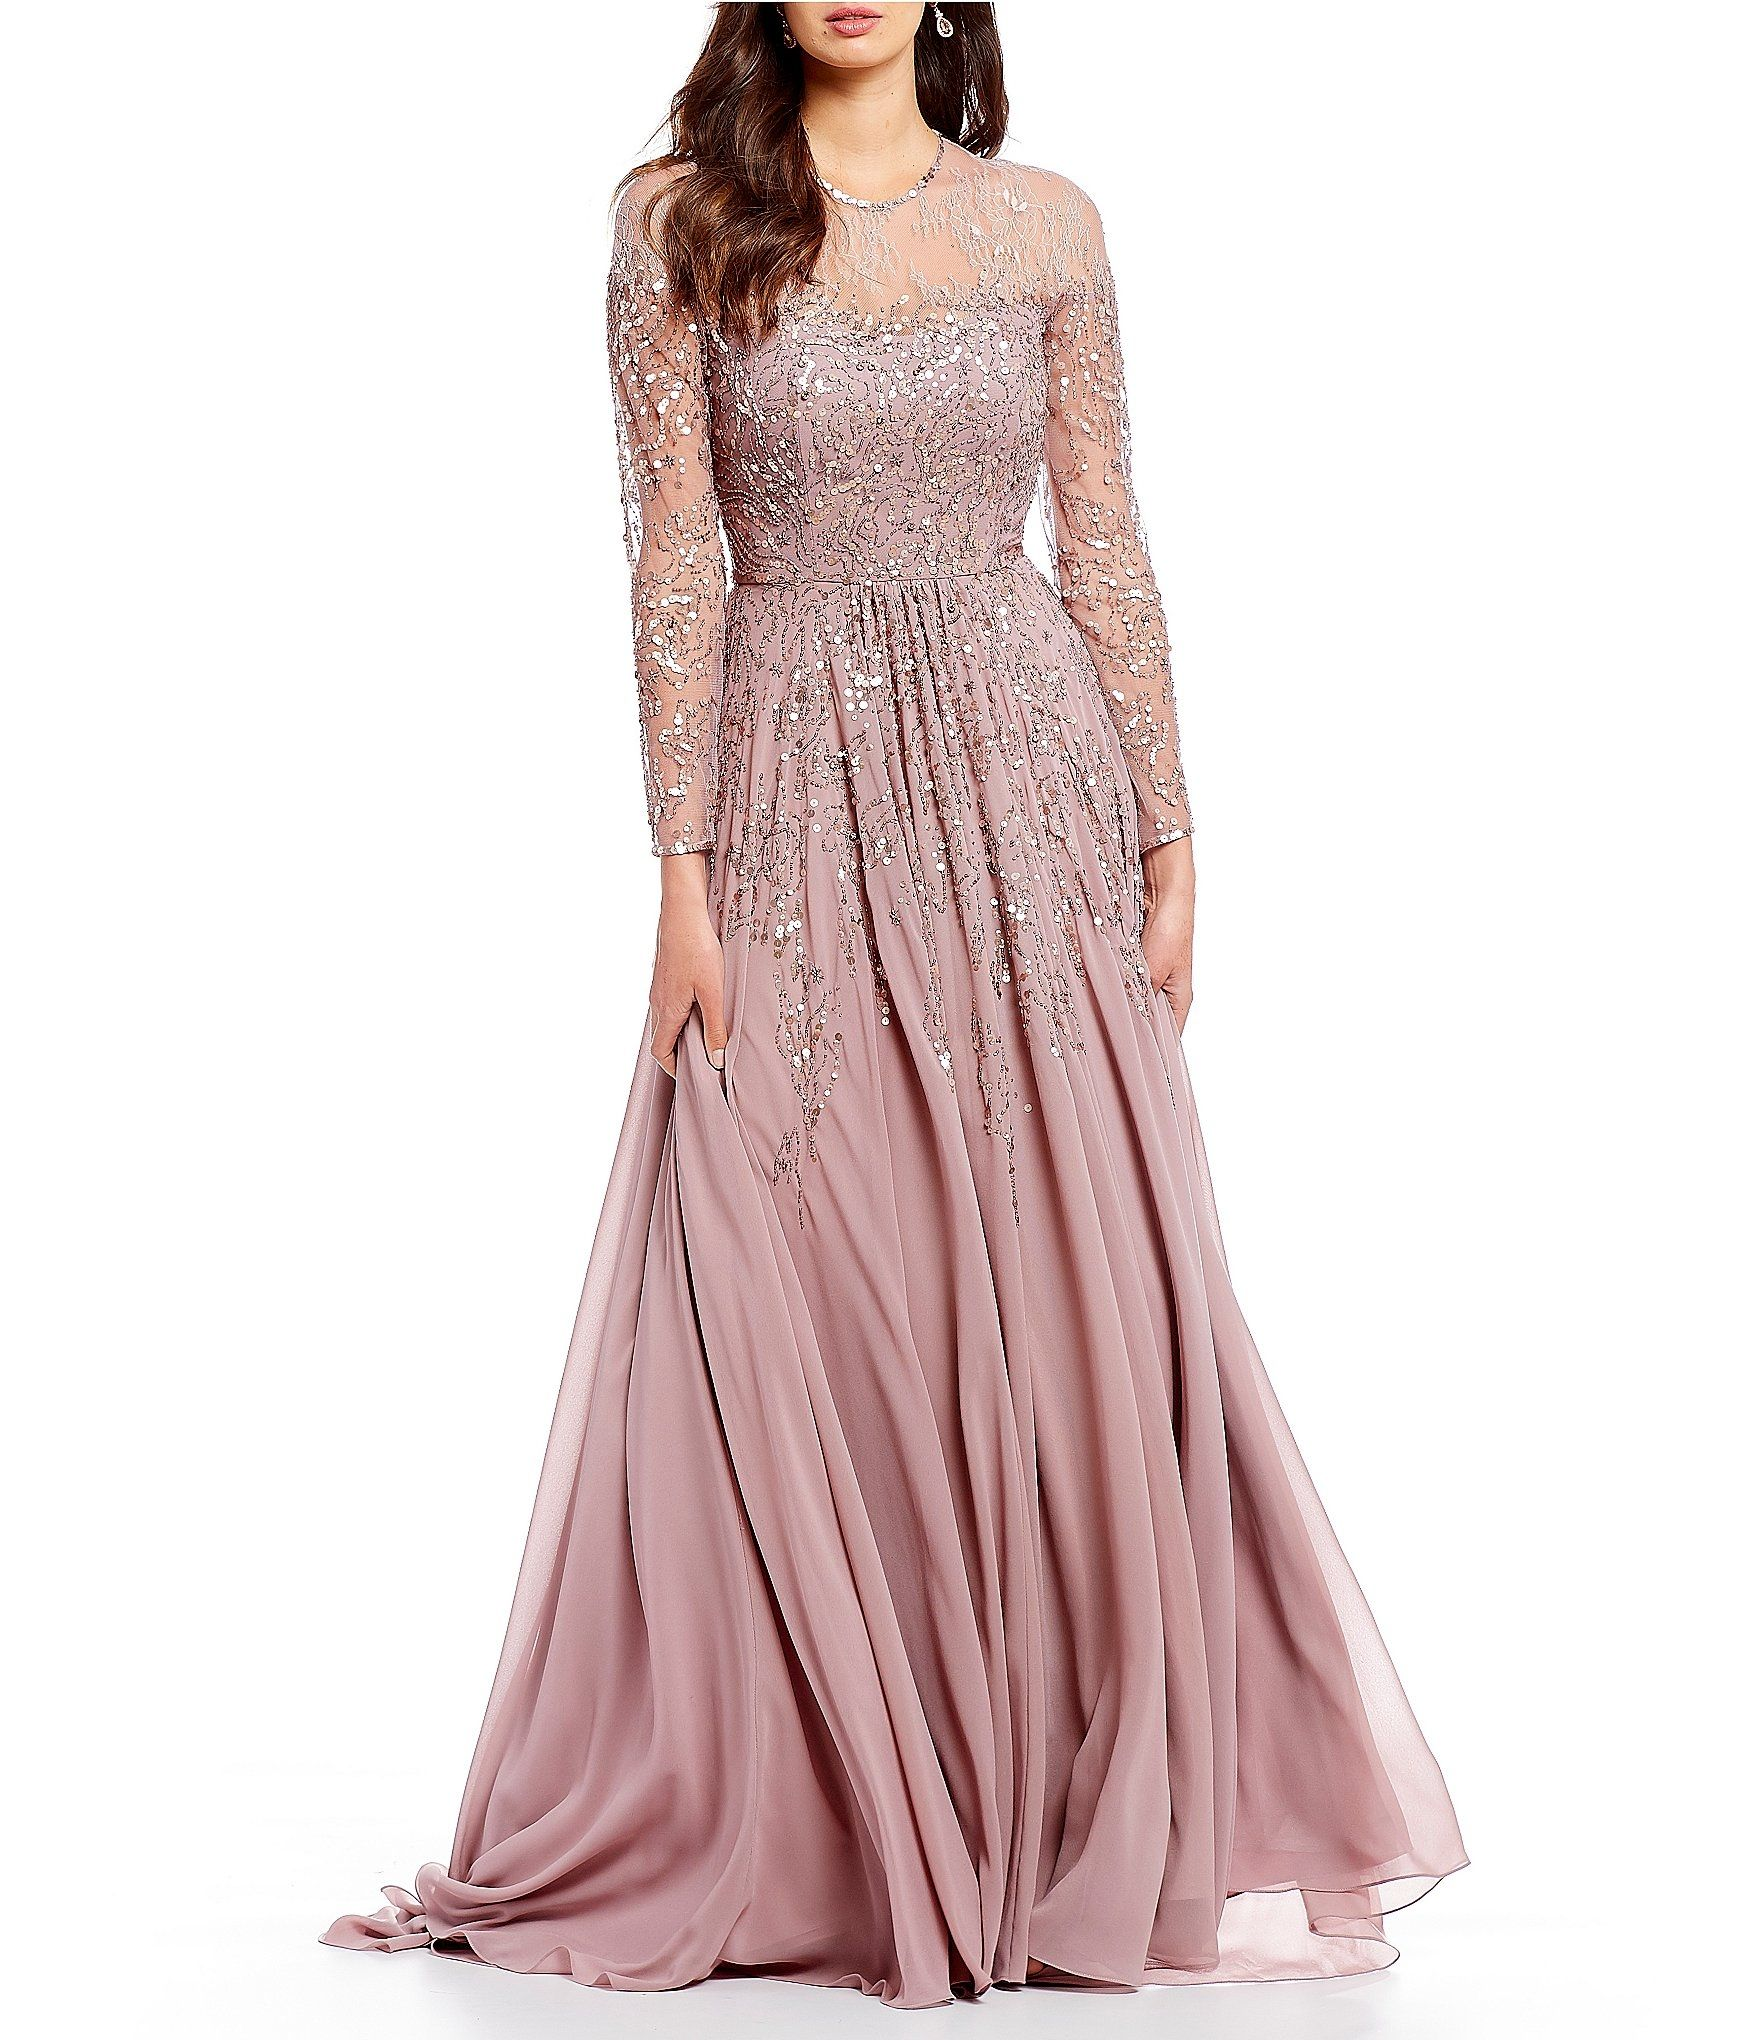 30 Excellent Photo Of Long Sleeve Ball Gowns Formal Gowns Evening Dresses Ball Gowns Long Sleeve Ball Gowns Dillards Bridesmaid Dresses